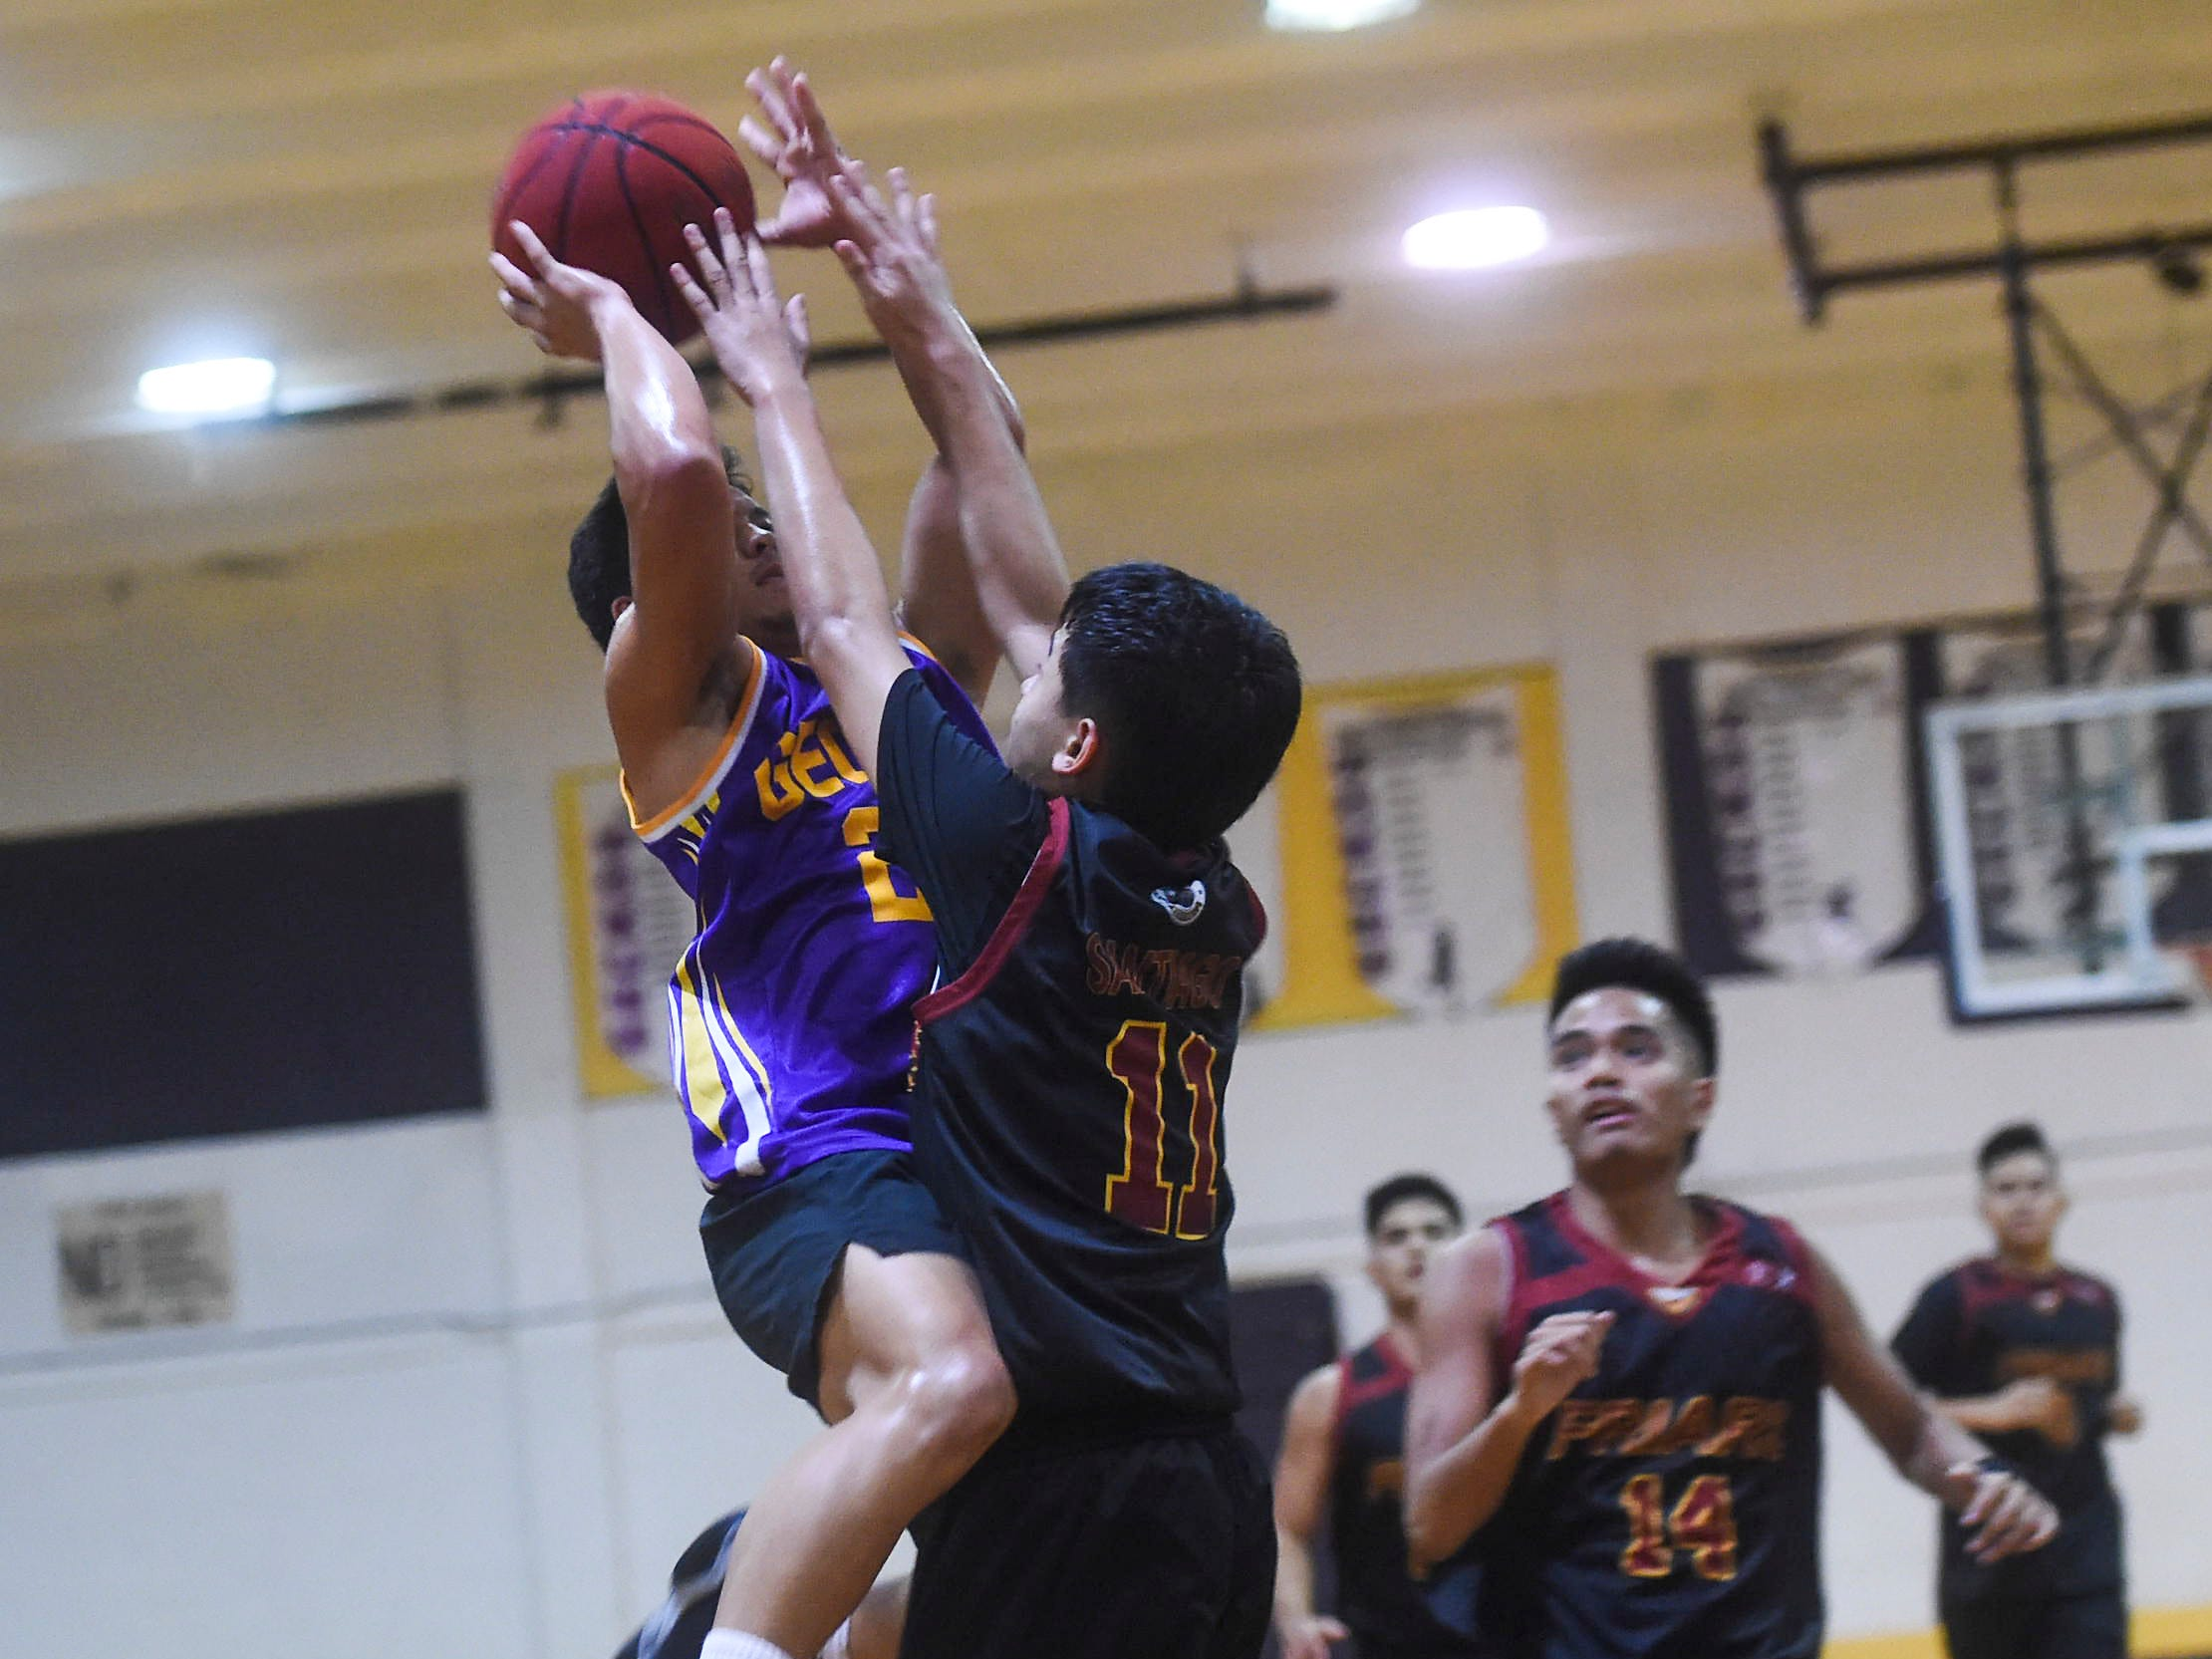 George Washington guard Shelby Meeks attempts a shot over Father Duenas' Colin Santiago (11) during their Independent Interscholastic Athletic Association of Guam Boys' Basketball game at the GW High School gym, Jan. 19, 2019. The Friars came through with a 52-69 comeback victory over the Geckos after trailing in the first half.